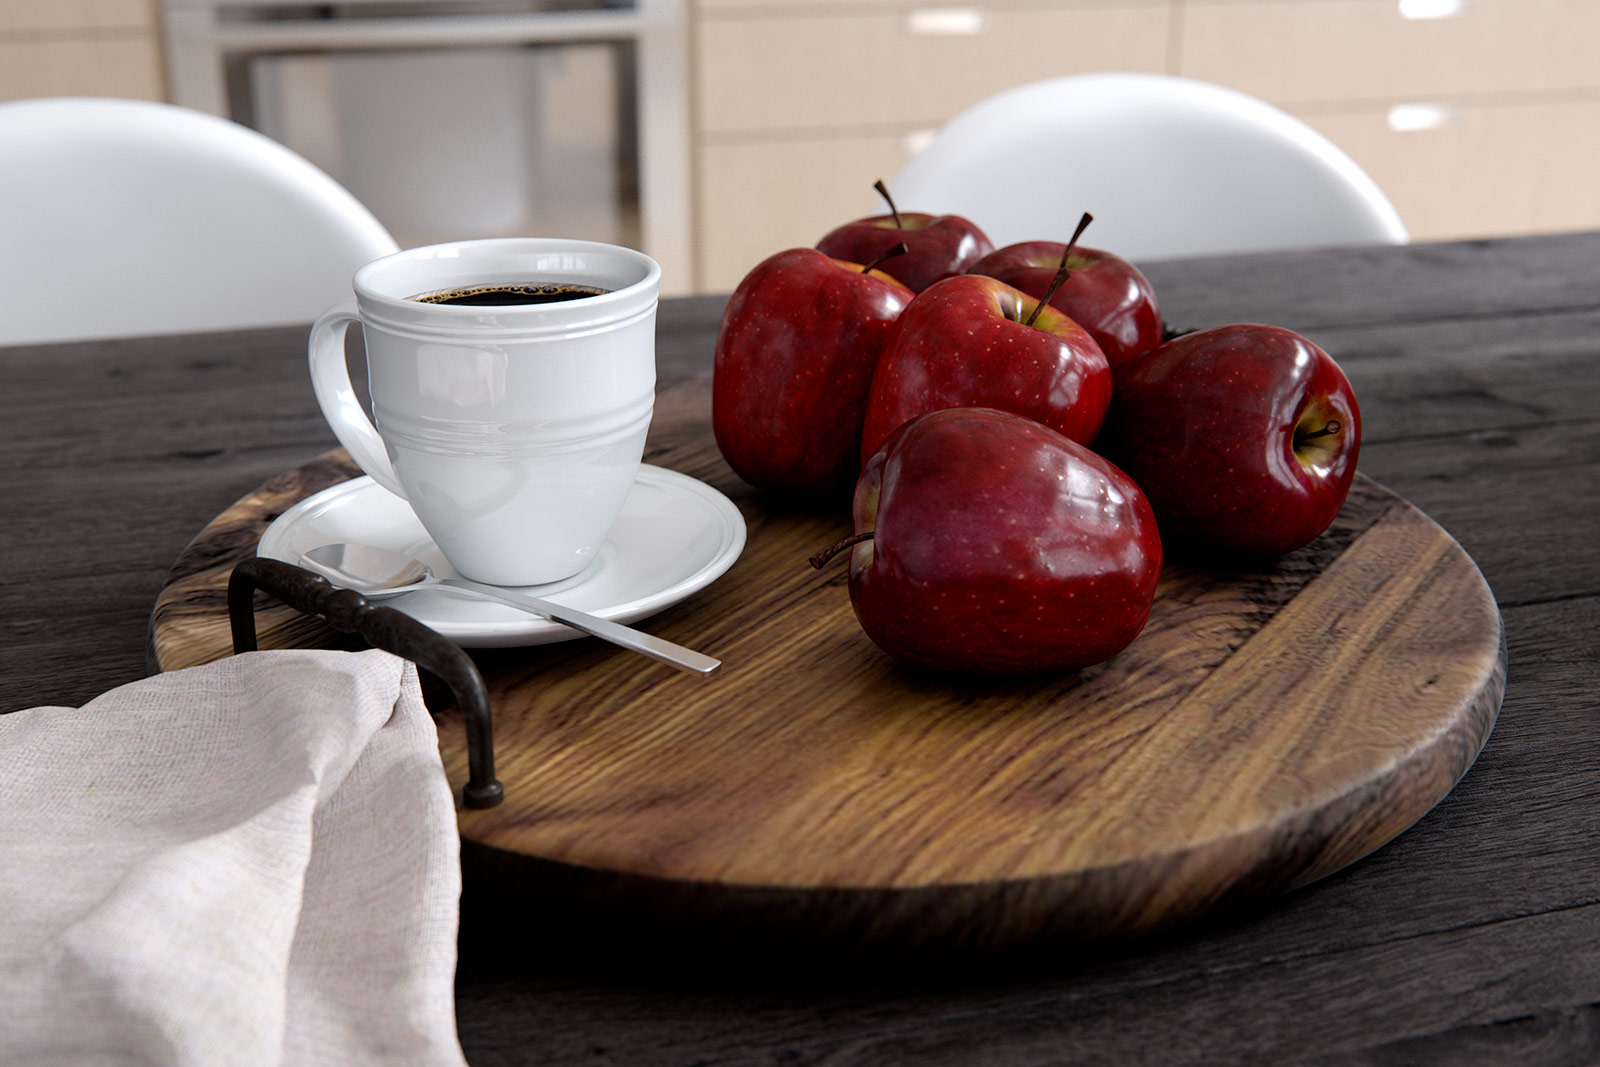 True photo-real interior with apples